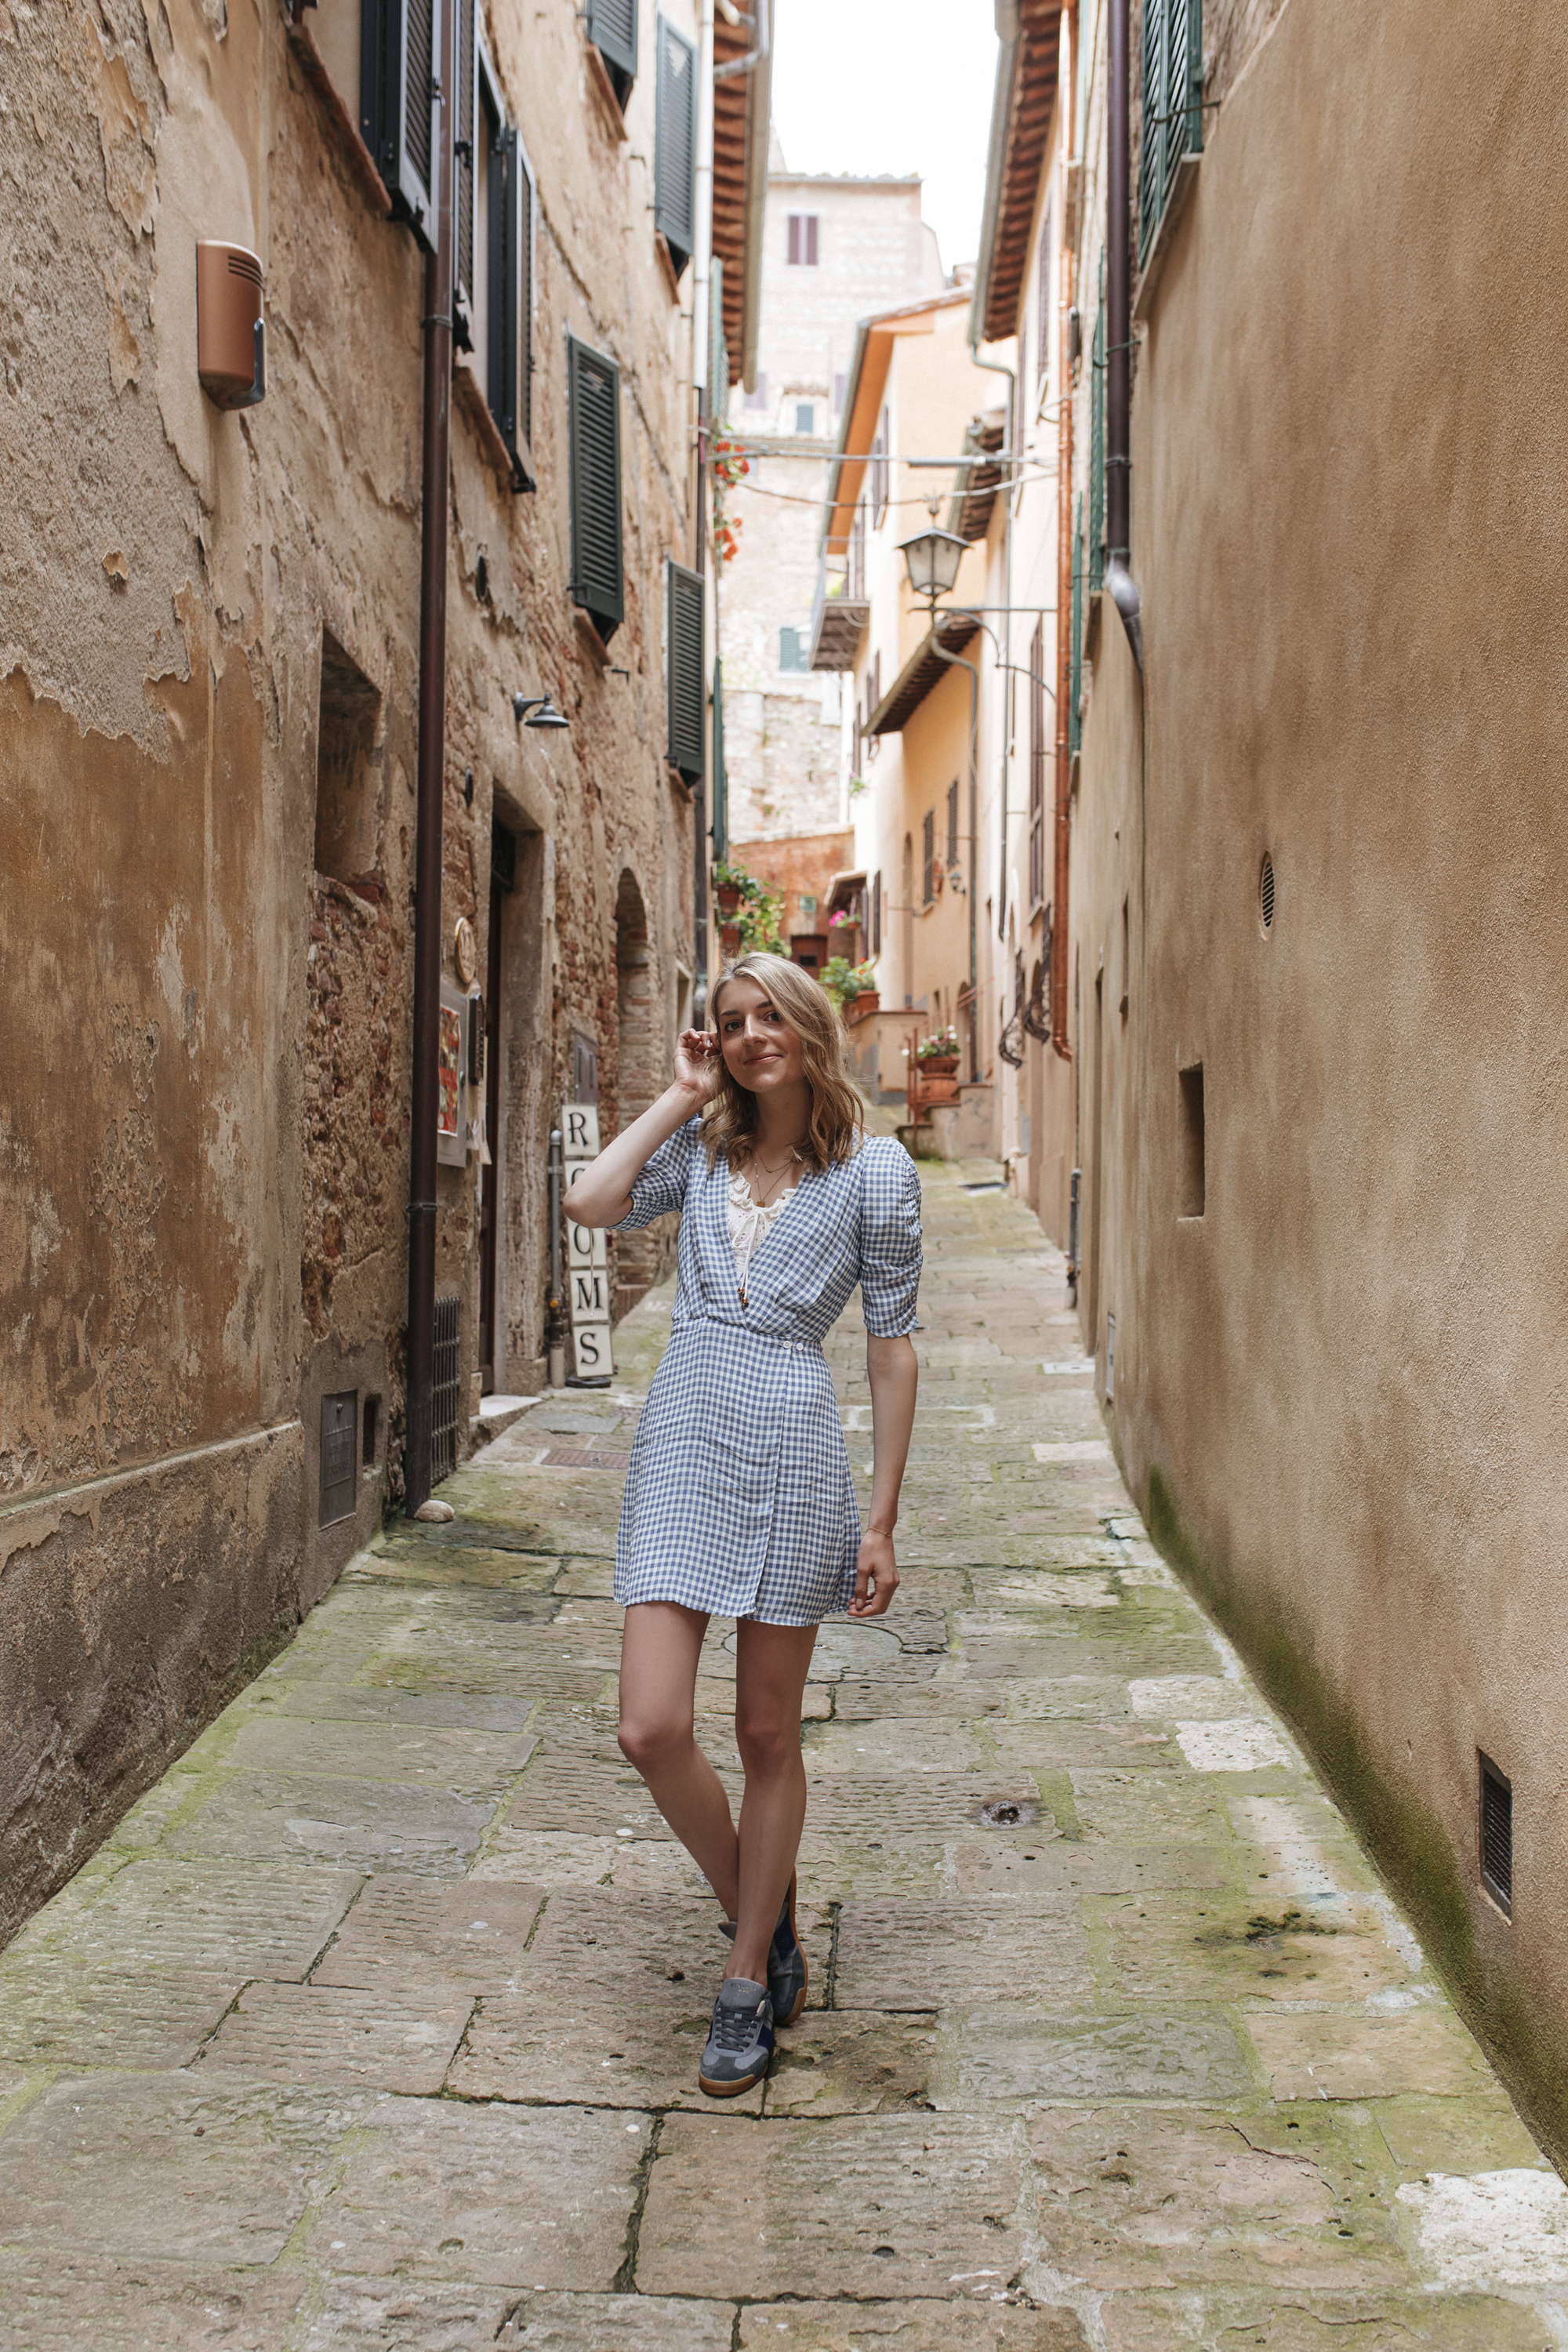 Life is too short to take every day and yourself so seriously. I loved how much Italian culture revolved around enjoying life's simple pleasures and being in the present moment.